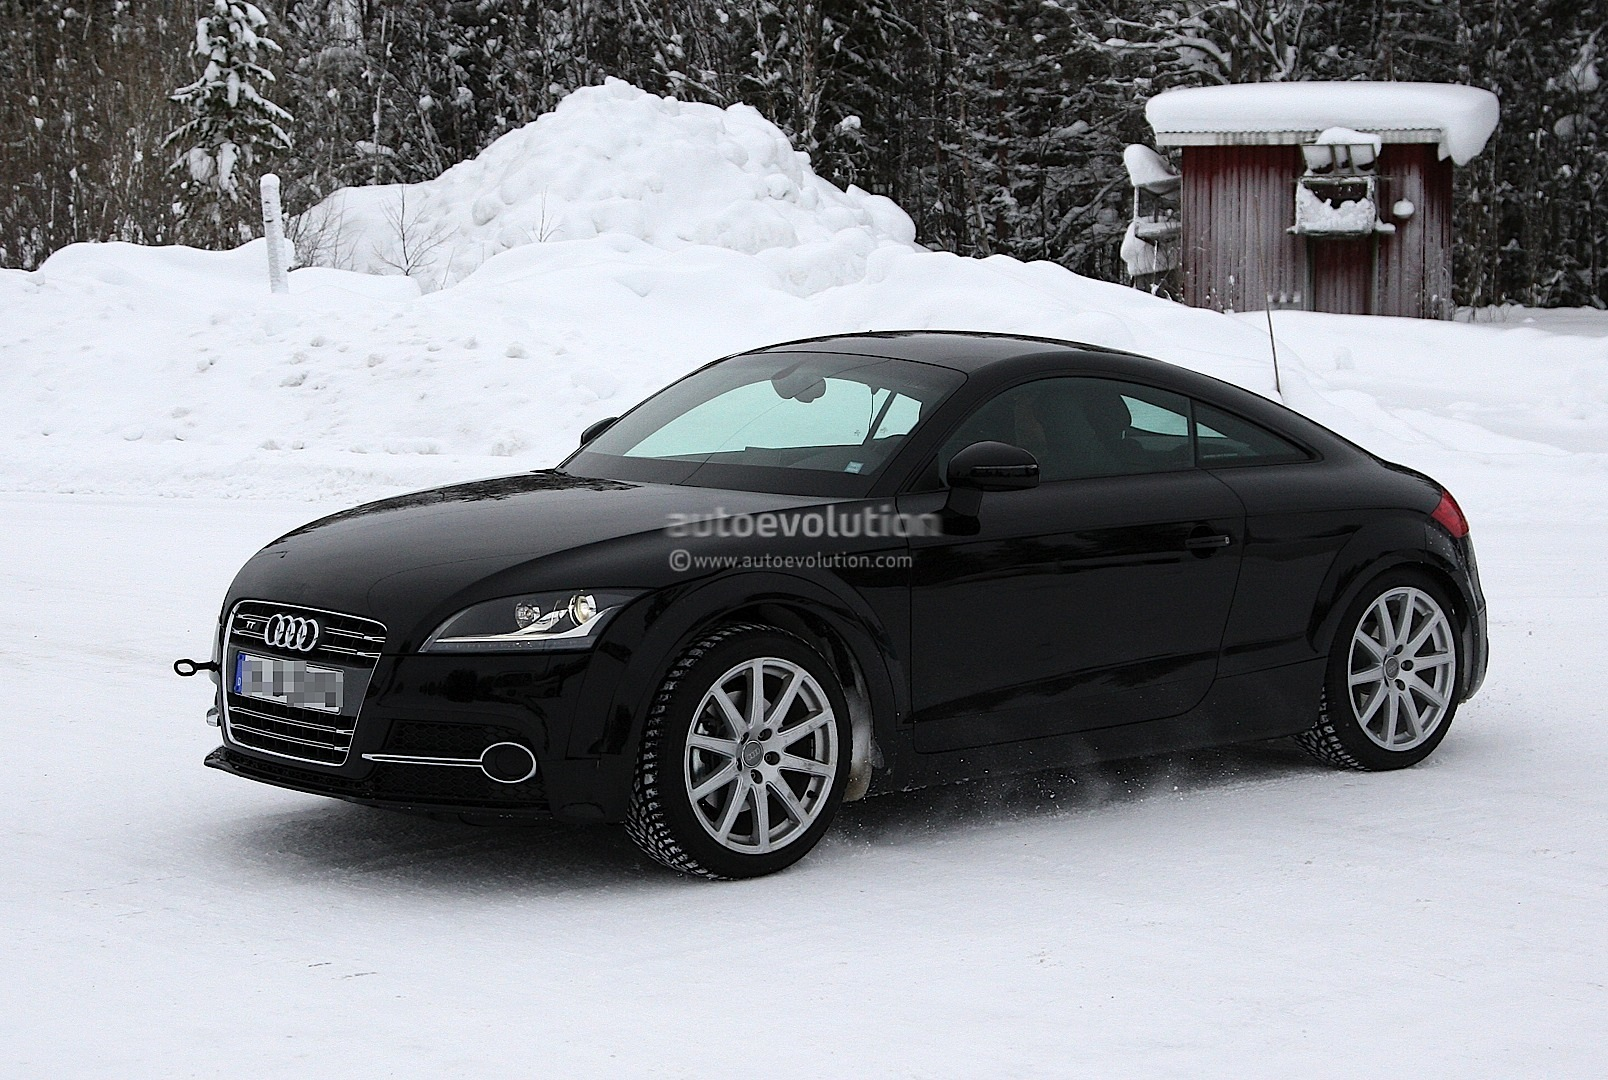 spyshots 2014 audi tt test mule. Black Bedroom Furniture Sets. Home Design Ideas